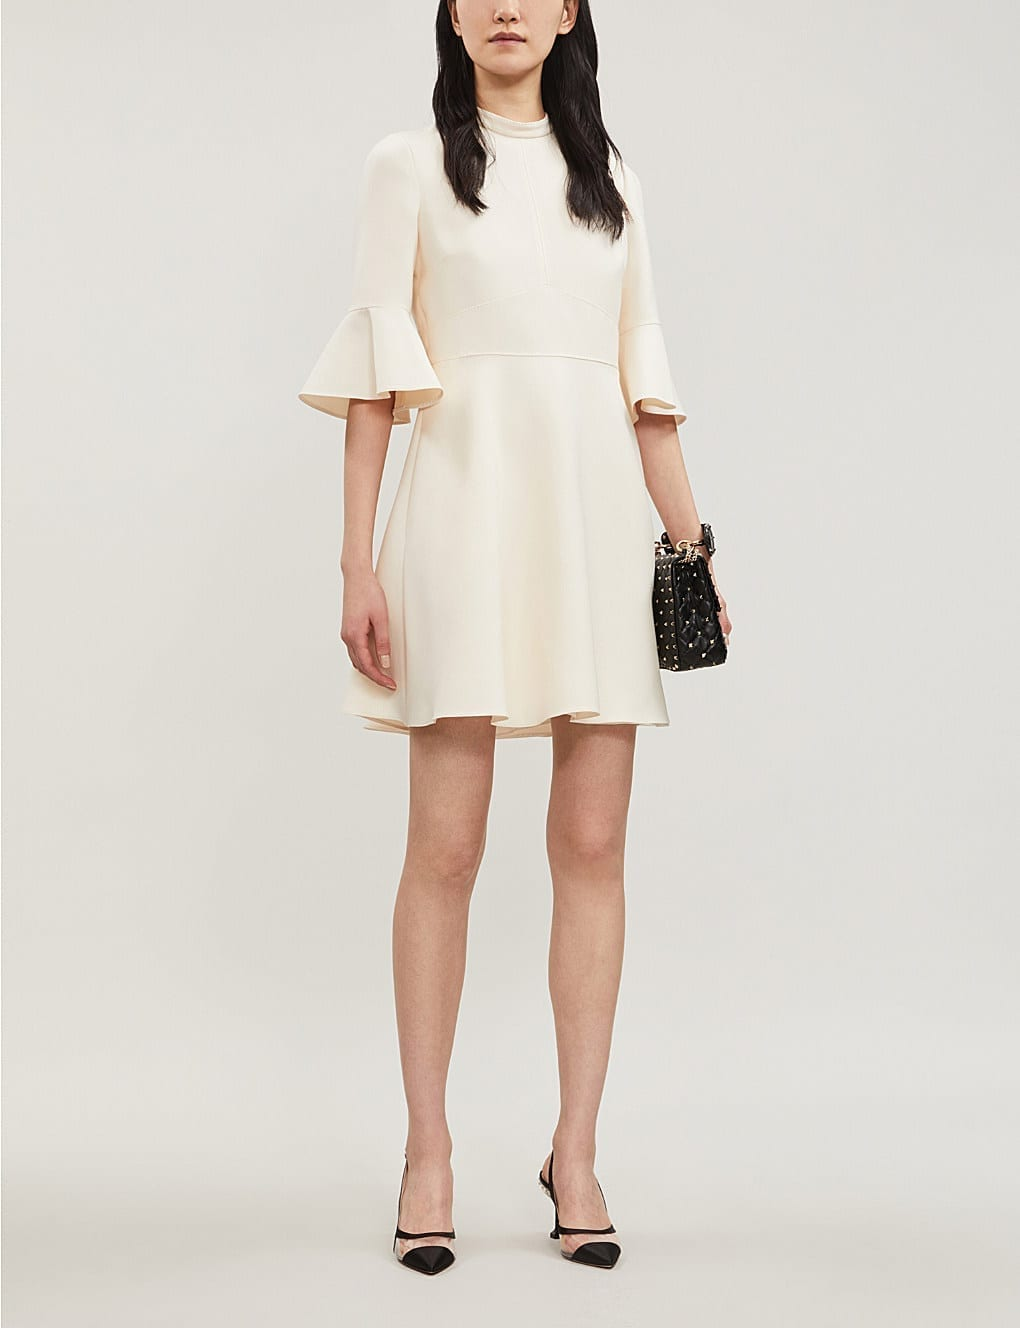 VALENTINO Flared Wool and Silk-Blend Ivory Dress